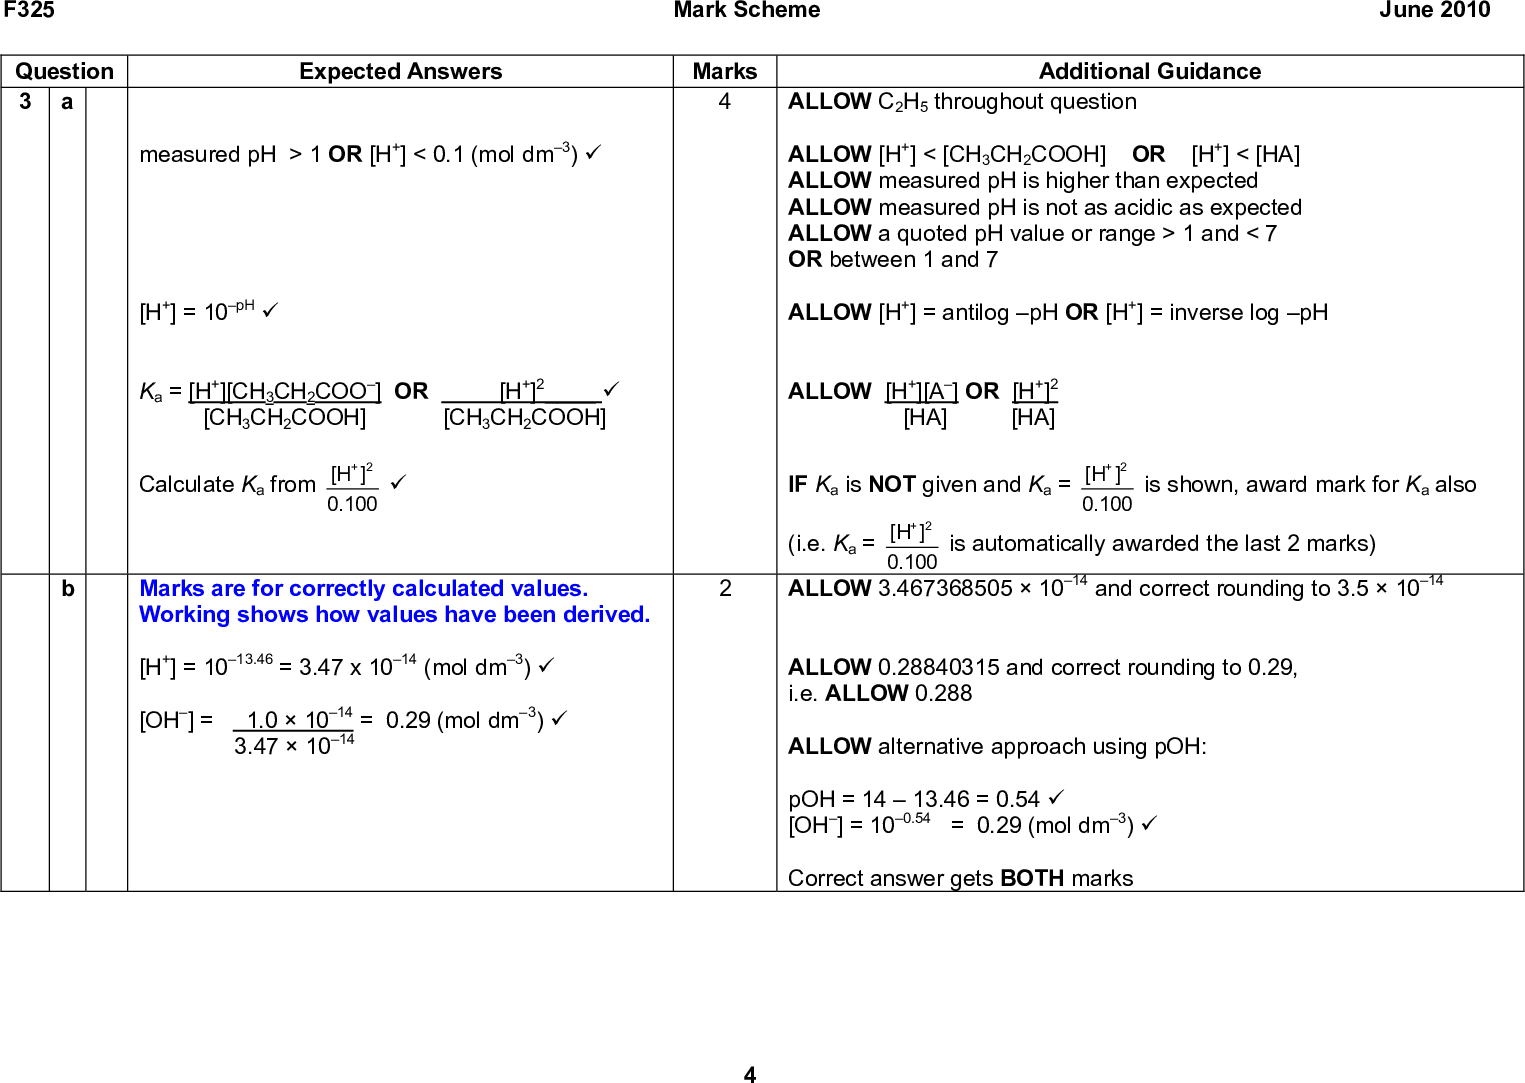 F325 Question 3 a Marks Expected Answers measured pH > 1 OR [H+] < 0.1 (mol dm3) (cid:57) [H+] = 10pH (cid:57) Ka = [H+][CH3CH2COO] OR [H+]2 (cid:57) [CH3CH2COOH] [CH3CH2COOH] Calculate Ka from (cid:57) [H+]2 0.100 Mark Scheme June 2010 Additional Guidance ALLOW C2H5 throughout question ALLOW [H+] < [CH3CH2COOH] OR [H+] < [HA] ALLOW measured pH is higher than expected ALLOW measured pH is not as acidic as expected ALLOW a quoted pH value or range > 1 and < 7 OR between 1 and 7 ALLOW [H+] = antilog pH OR [H+] = inverse log pH ALLOW [H+][A] OR [H+]2 [HA] [HA] IF Ka is NOT given and Ka = [H+]2 0.100 is shown, award mark for Ka also is automatically awarded the last 2 marks) [H+]2 (i.e. Ka = 0.100 ALLOW 3.4673685051014 and correct rounding to 3.51014 ALLOW 0.28840315 and correct rounding to 0.29, i.e. ALLOW 0.288 ALLOW alternative approach using pOH: pOH = 1413.46 = 0.54 (cid:57) [OH] = 100.54 = 0.29 (mol dm3) (cid:57) Correct answer gets BOTH marks Marks are for correctly calculated values. Working shows how values have been derived. [H+] = 1013.46 = 3.47 x 1014 (mol dm3) (cid:57) [OH] = 1.01014 = 0.29 (mol dm3) (cid:57) 3.471014<br />  F325 Question Mark Scheme June 2010 Marks Expected Answers Propanoic acid reacts with sodium hydroxide forming propanoate ions/sodium propanoate OR CH3CH2COOH + NaOH (cid:111) CH3CH2COONa + H2O (cid:57) Some propanoic acid remains OR propanoic acid AND propanoate (ions) / sodium propanoate present (cid:57) equilibrium: CH3CH2COOHH+ + CH3CH2COO(cid:57) Added alkali CH3CH2COOH reacts with added alkali OR CH3CH2COOH + OH (cid:111) OR added alkali reacts with H+ OR H+ + OH (cid:111) (cid:57) (cid:111) CH3CH2COO OR Equilibrium (cid:111) right (cid:57) Added acid CH3CH2COO reacts with added acid OR [H+] increases (cid:57) (cid:111) CH3CH2COOH OR Equilibrium (cid:111) left (cid:57) Additional Guidance ANNOTATIONS MUST BE USED ALLOW C2H5 throughout question ALLOW Adding NaOH forms propanoate ions/sodium propanoate (imples that the NaOH is added